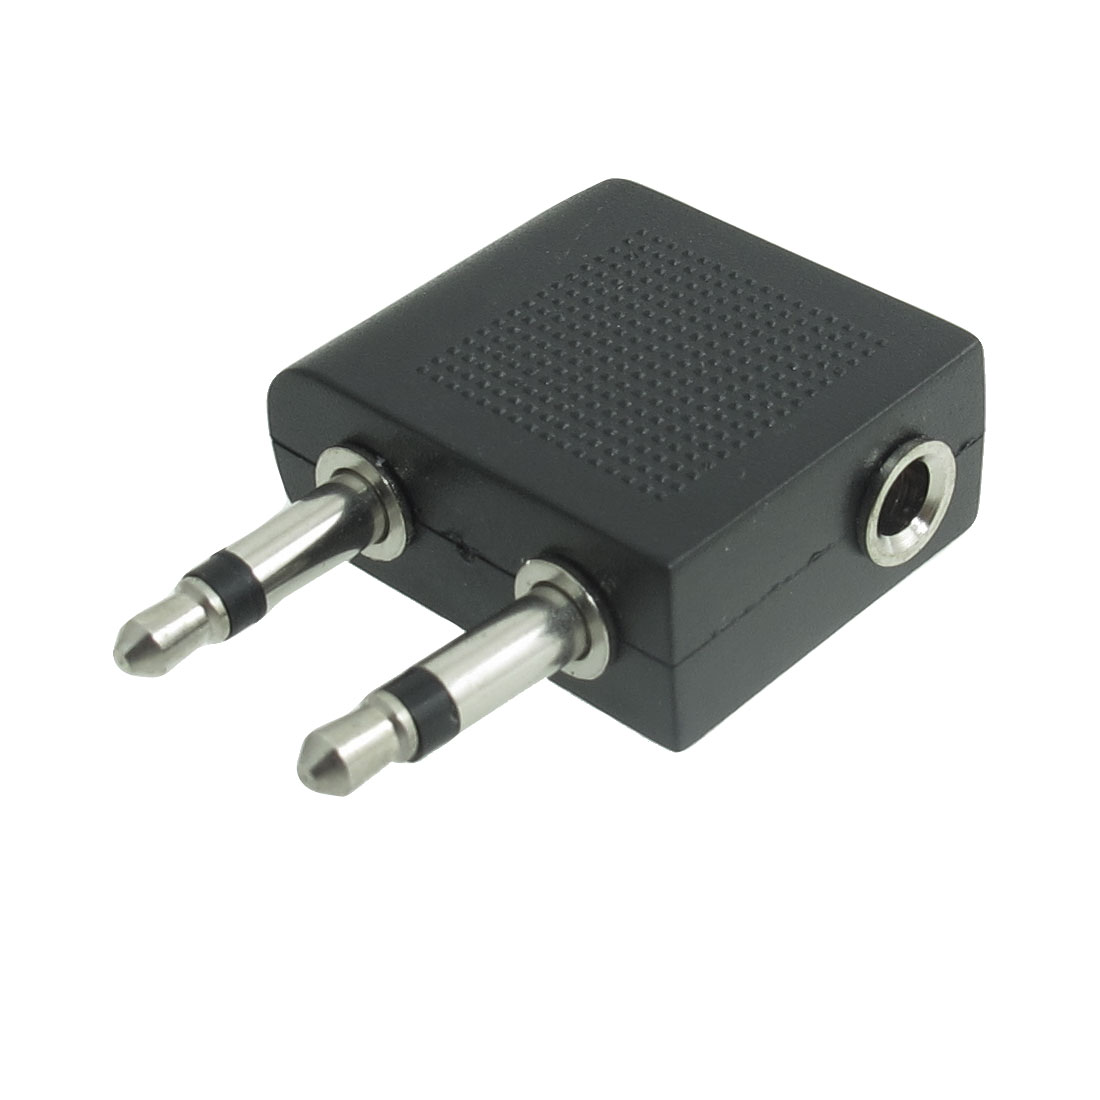 3.5mm Nickel Plated Female to Dual Male Audio Splitter Connector Adaptor Black